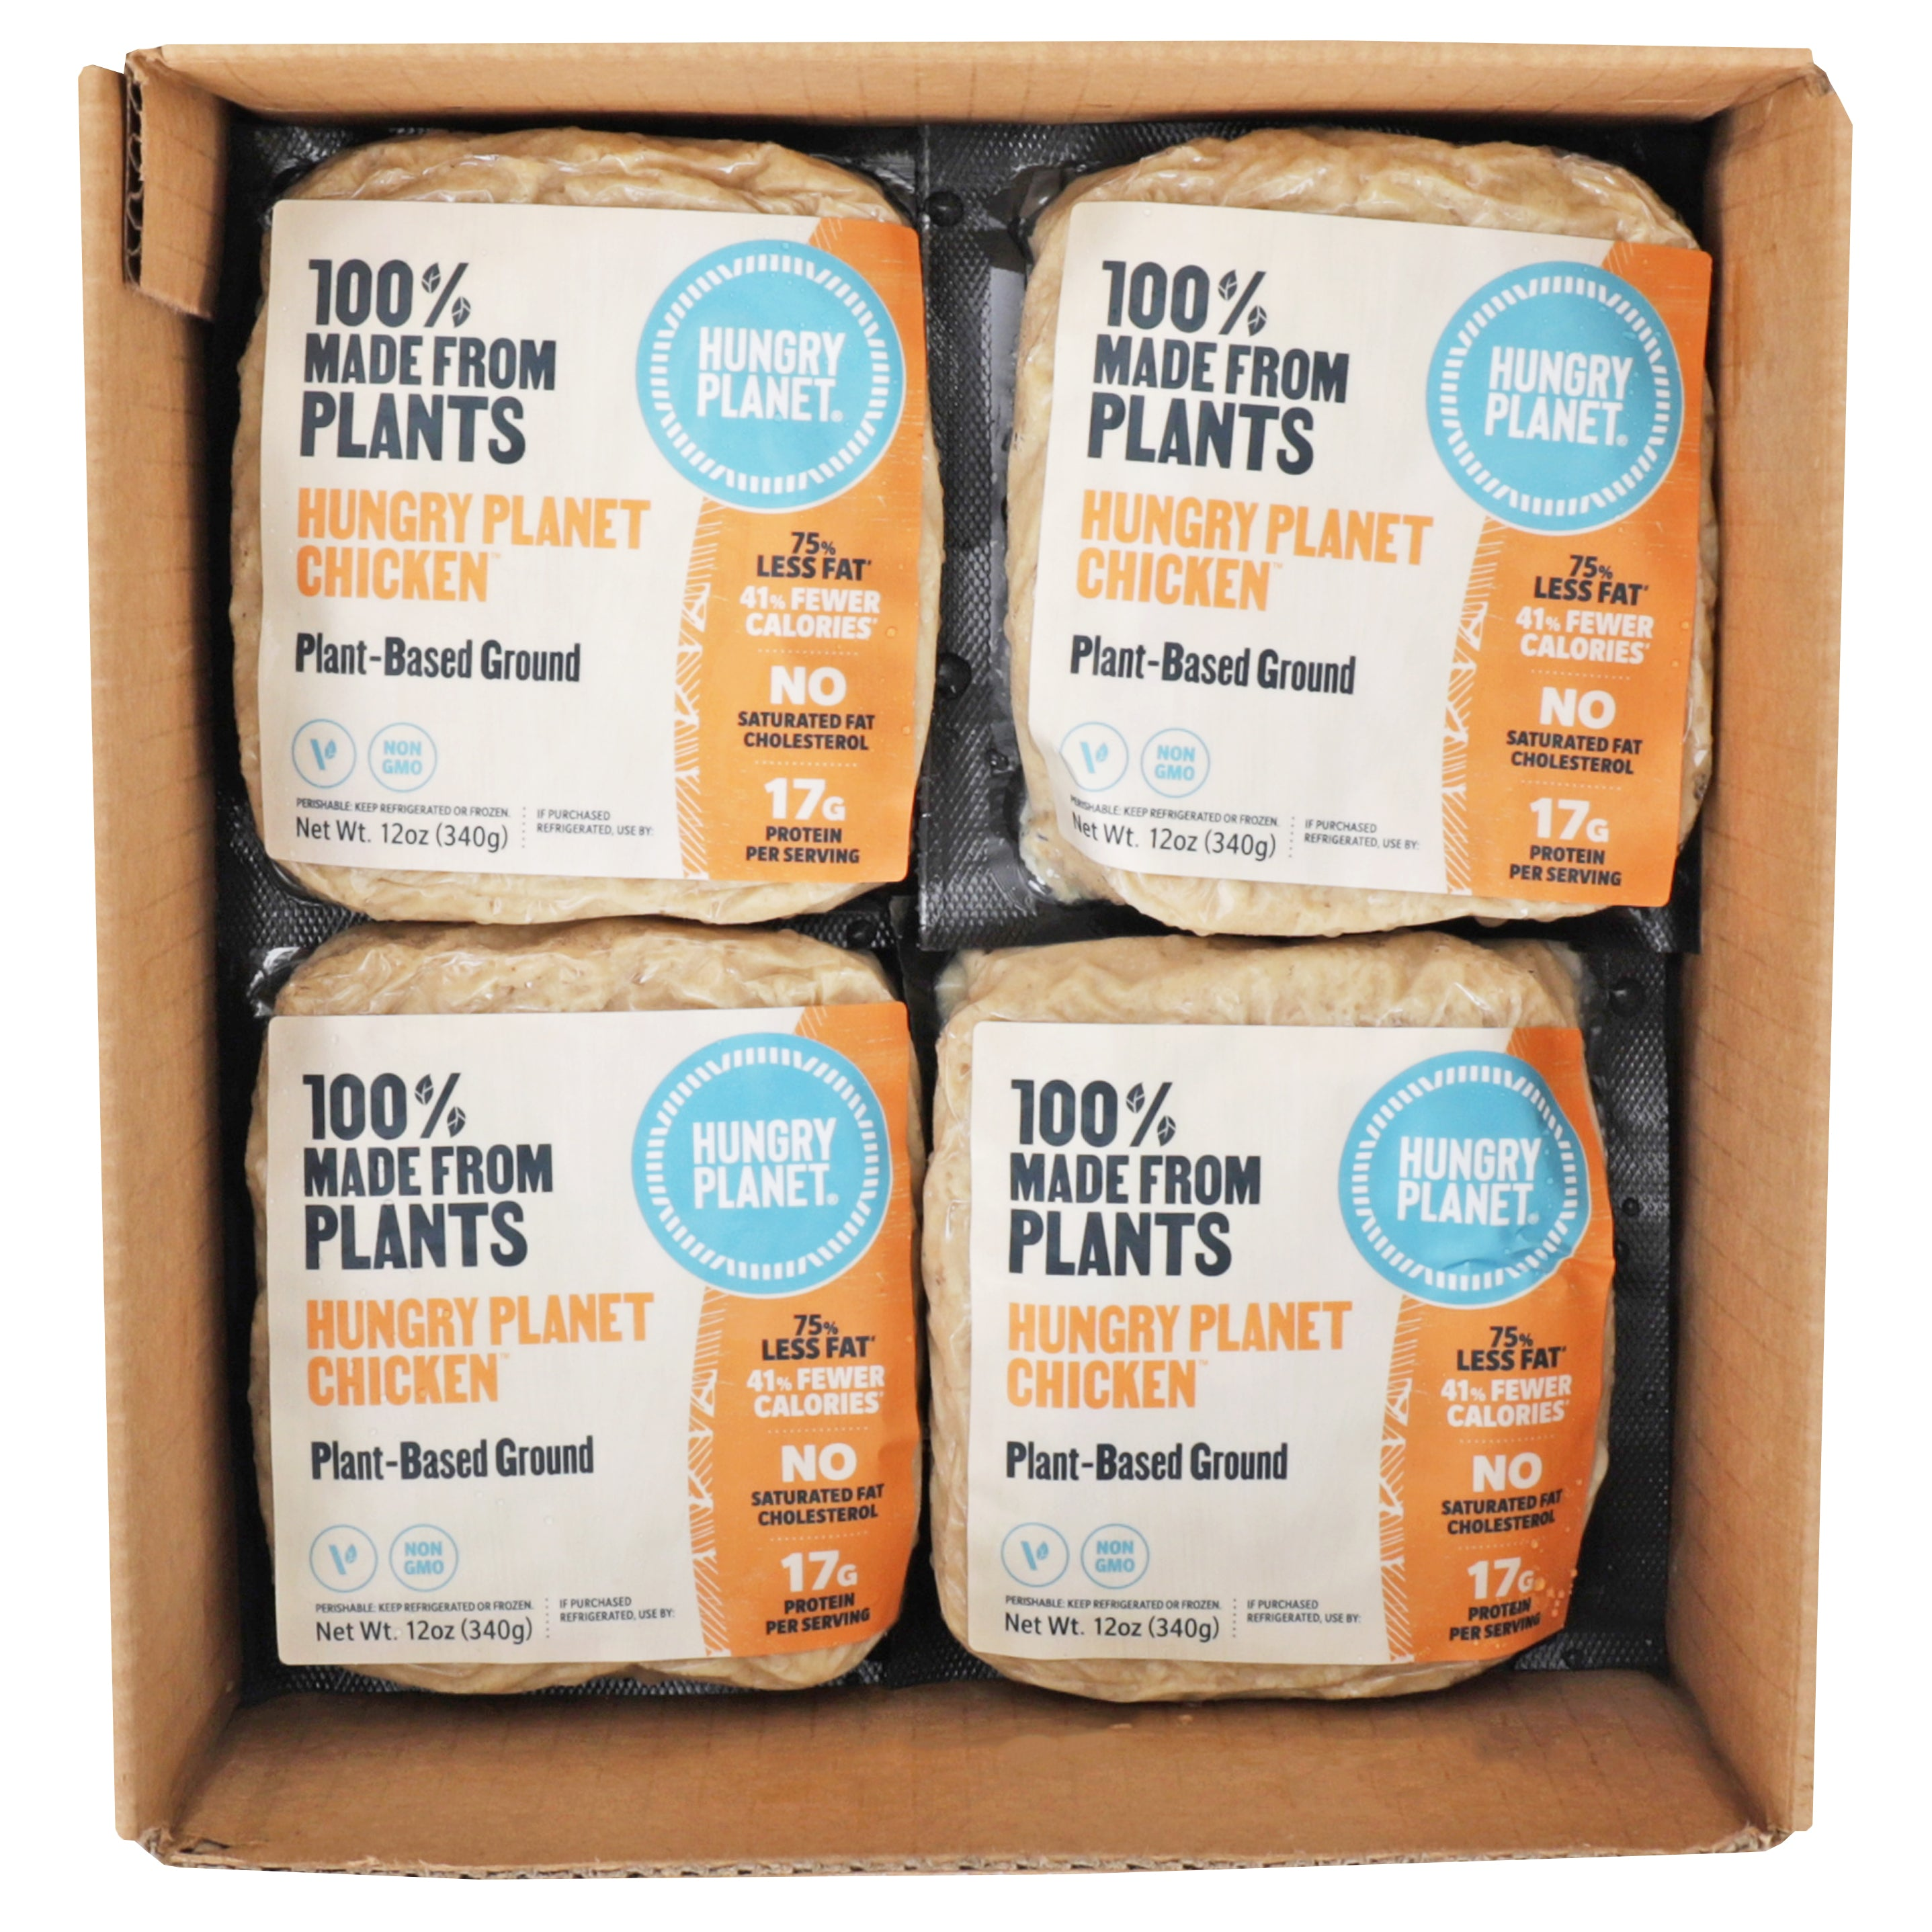 Hungry Planet Chicken™ Plant-Based Ground